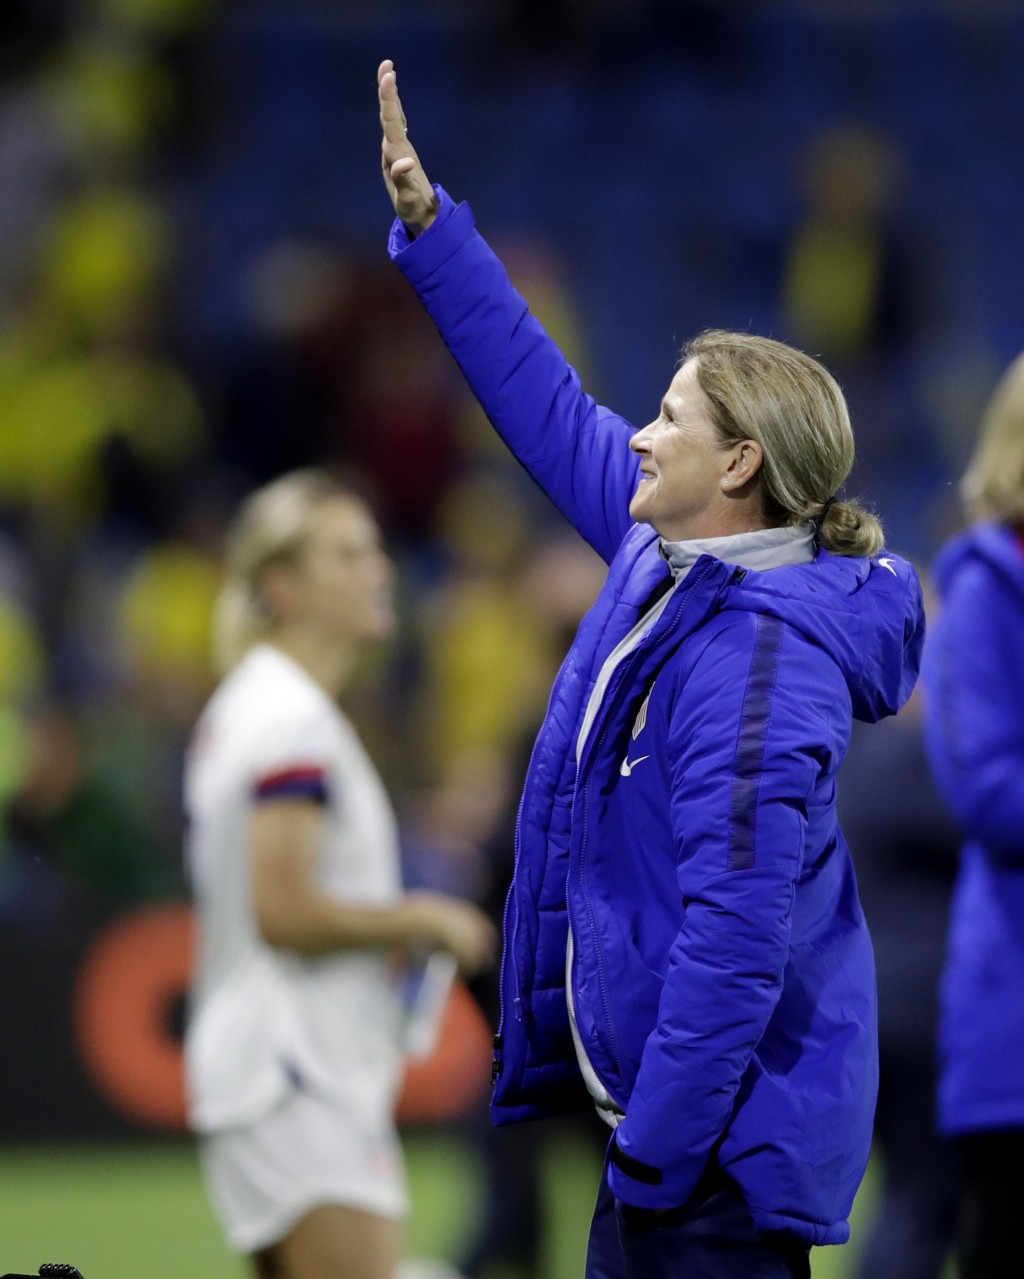 United States coach Jill Ellis waves to the crowd following her team's 2-0 win over Sweden in their Women's World Cup Group F soccer match at Stade Oc